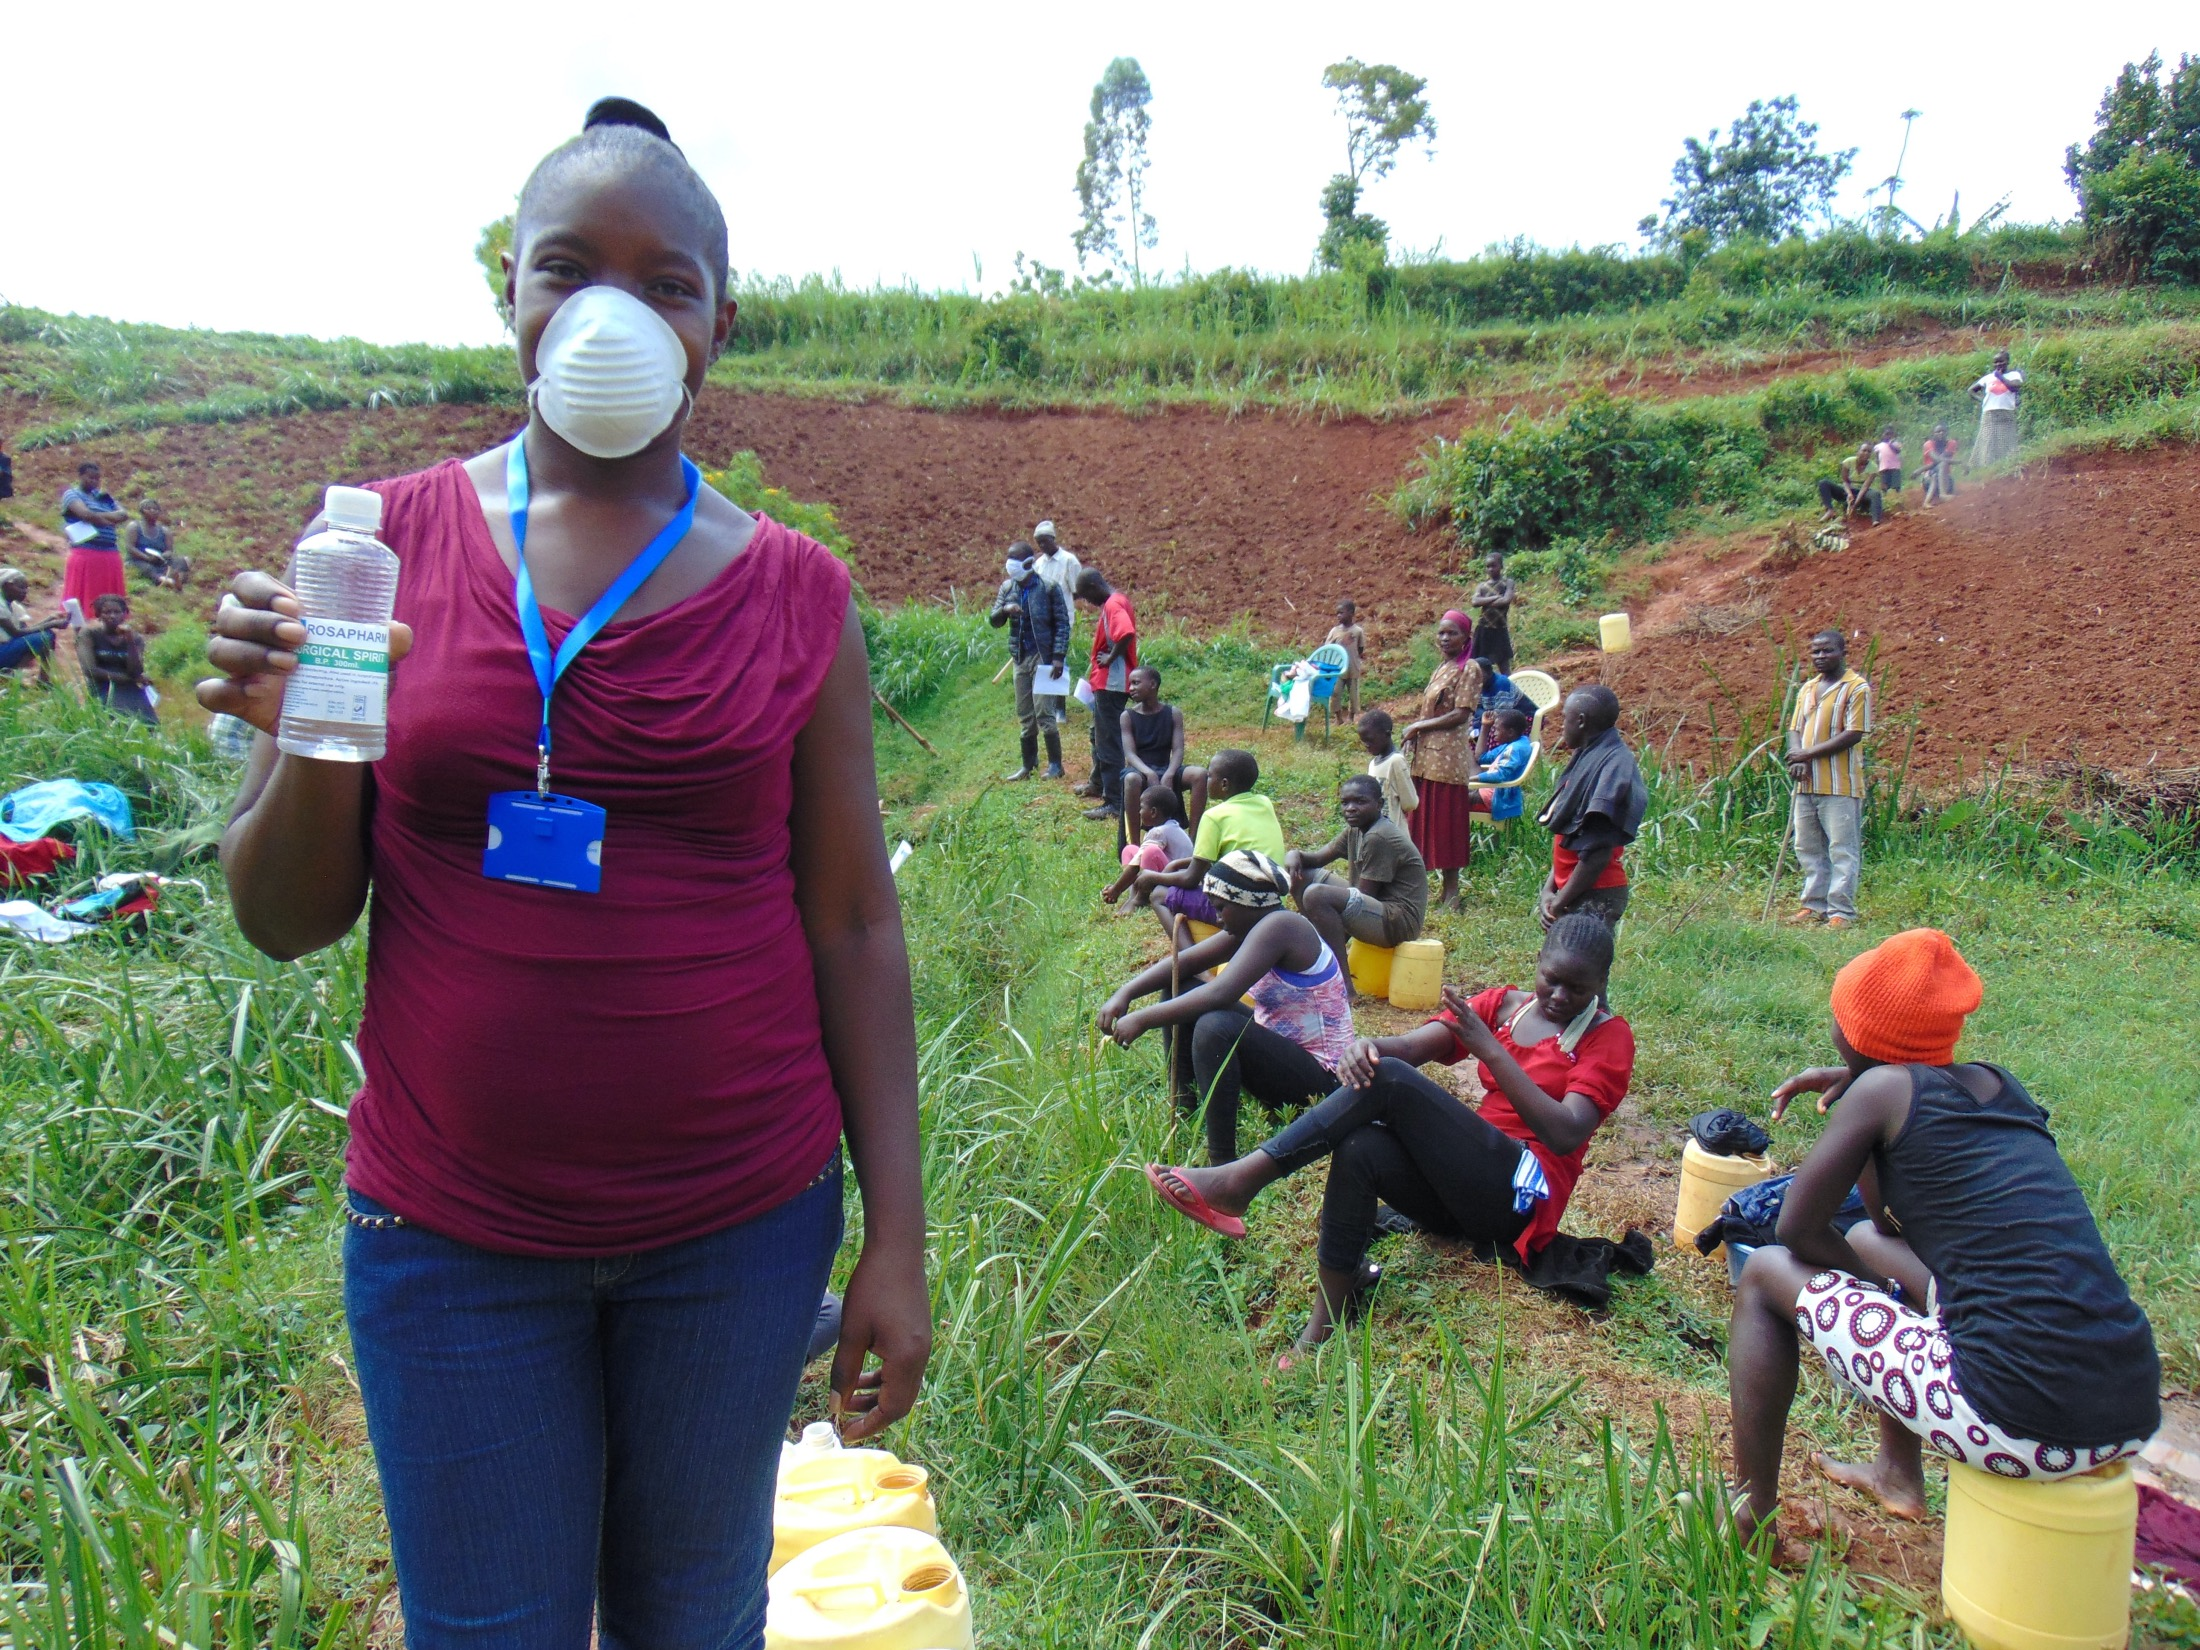 The Water Project : 6-covid19-kenya4711-facilitator-masinde-with-sanitizer-for-participants-hands